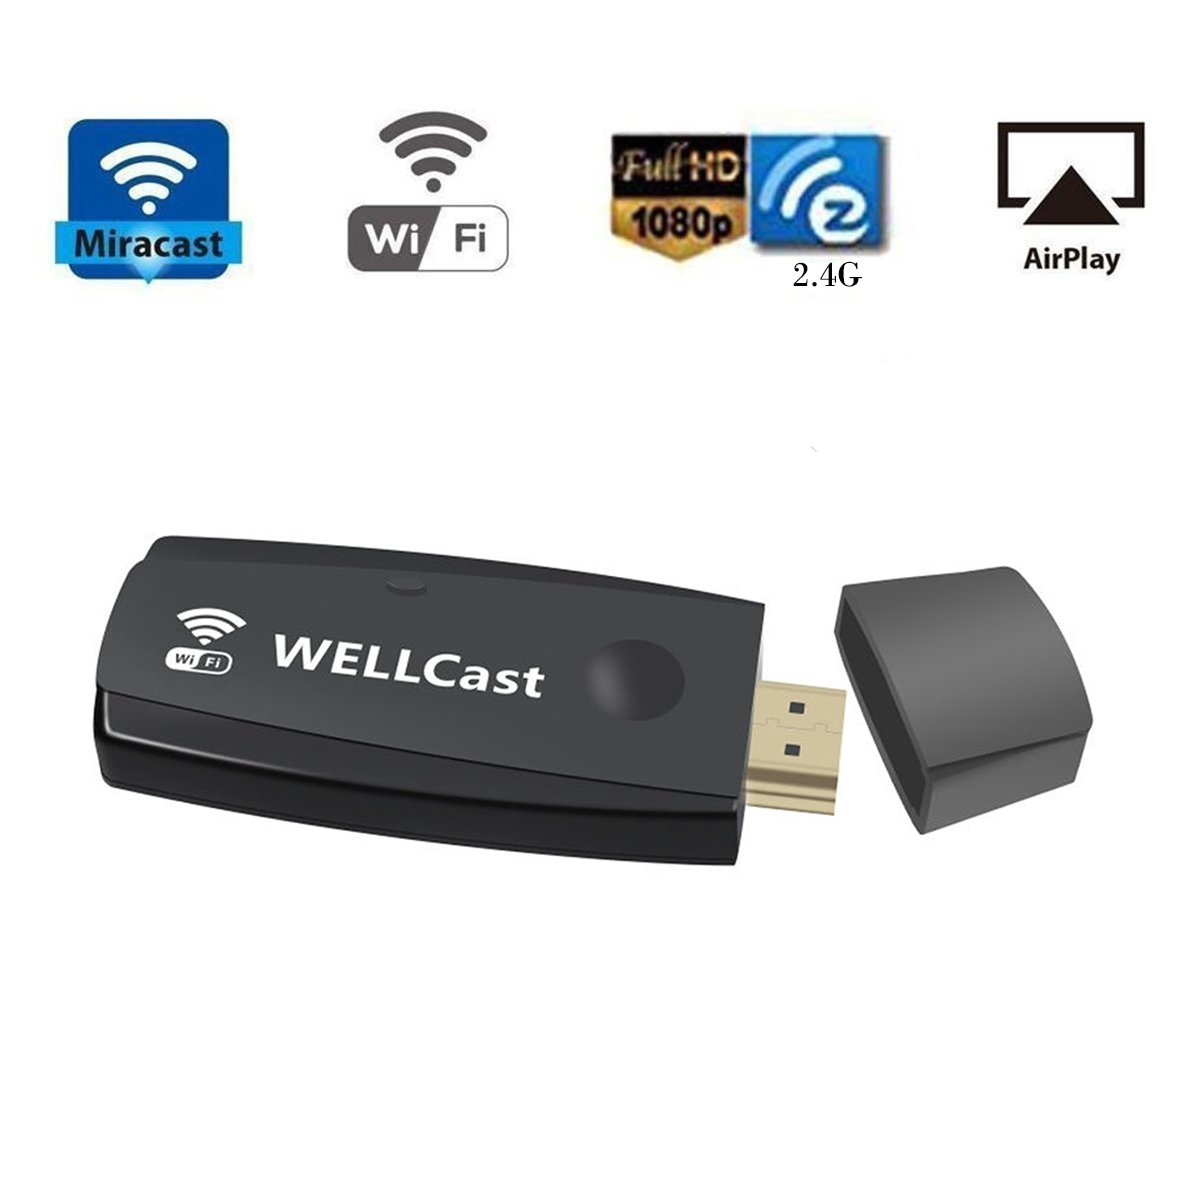 Miracast Dongle,2.4G Wireless TV Streaming Media,WiFi Display Adapter Share Video Audio Picture for iPhone, iPad, Samsung Android Smart Devices to TV Monitor Projector(With HDMI Extension Cable)